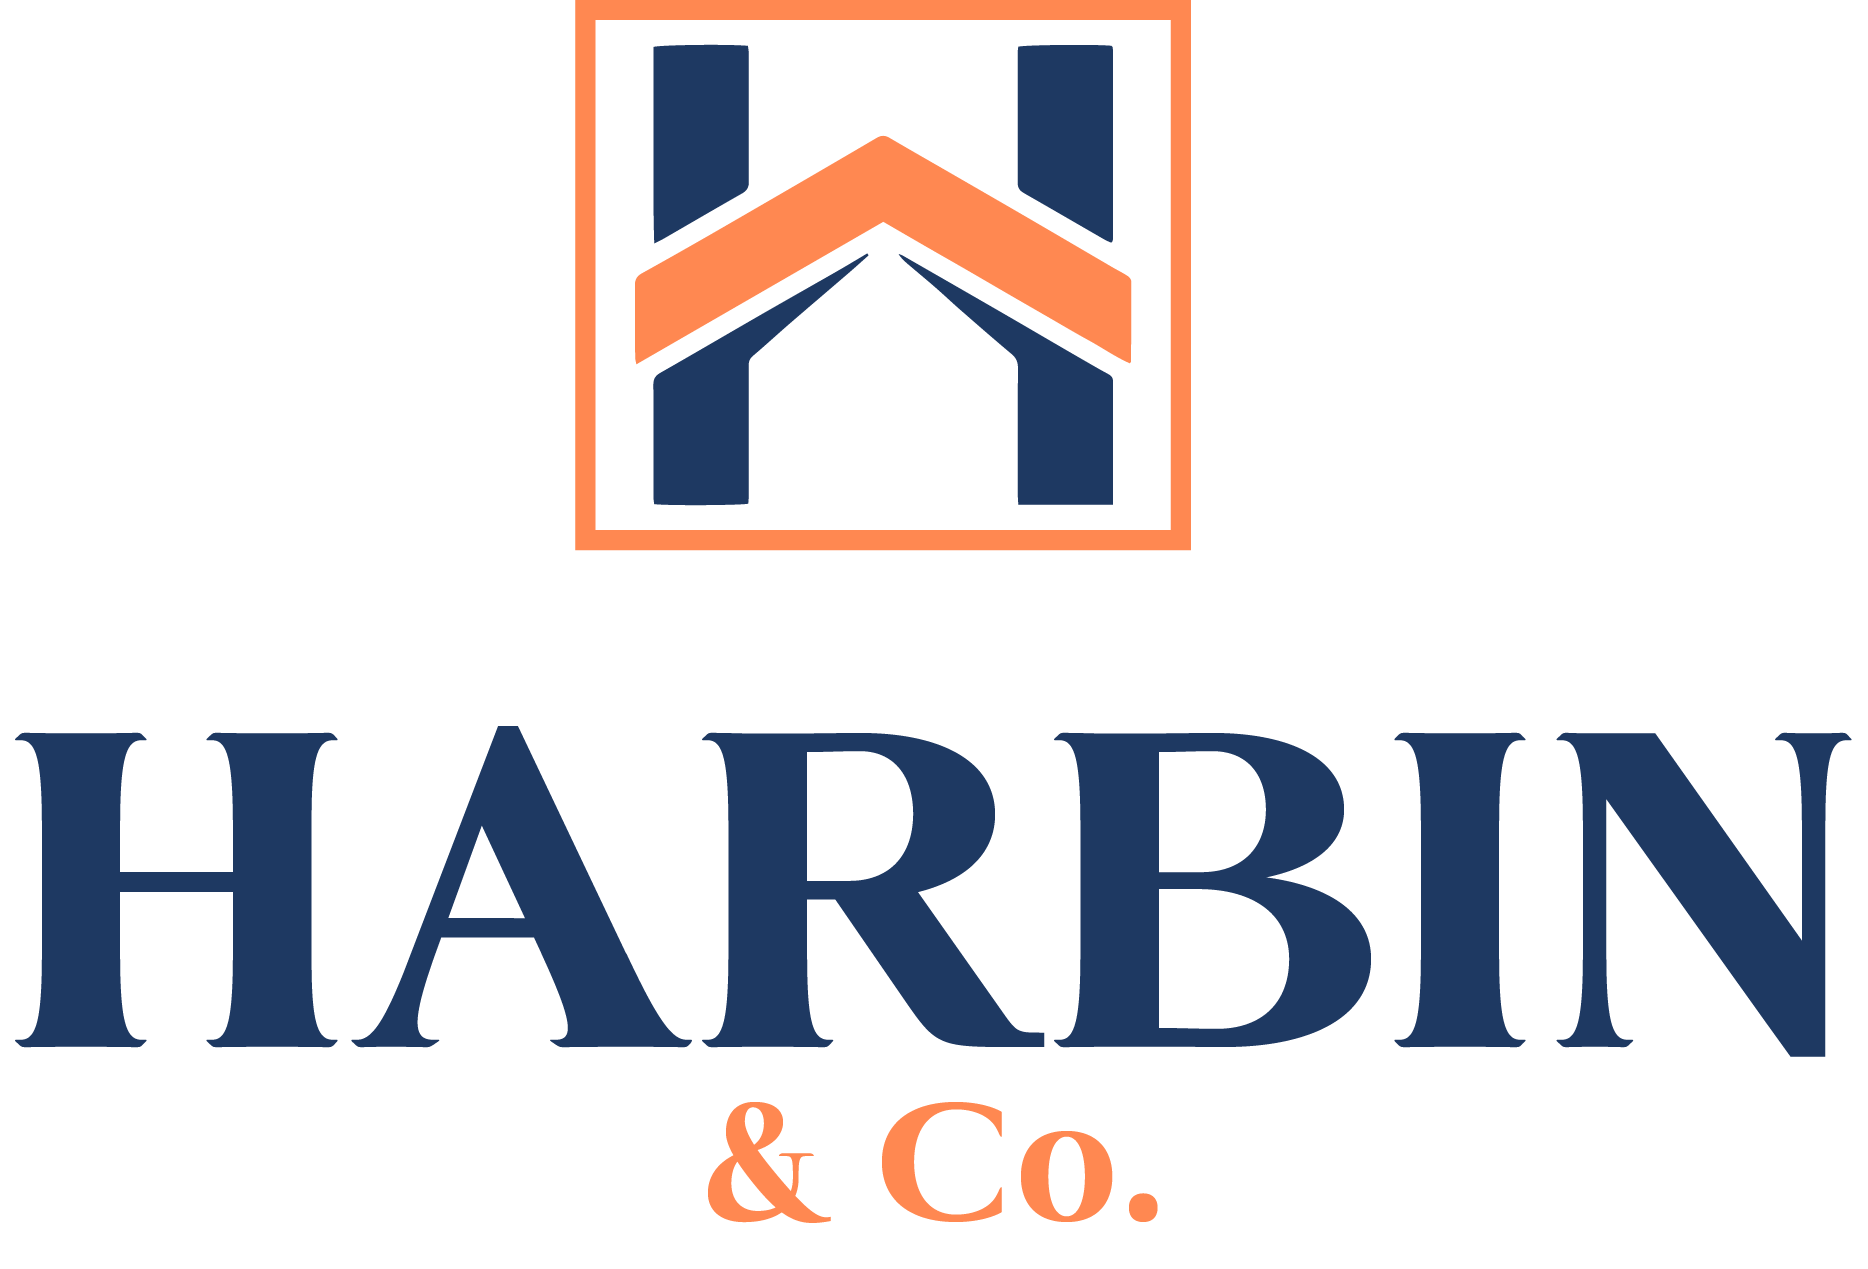 Harbin & Co.